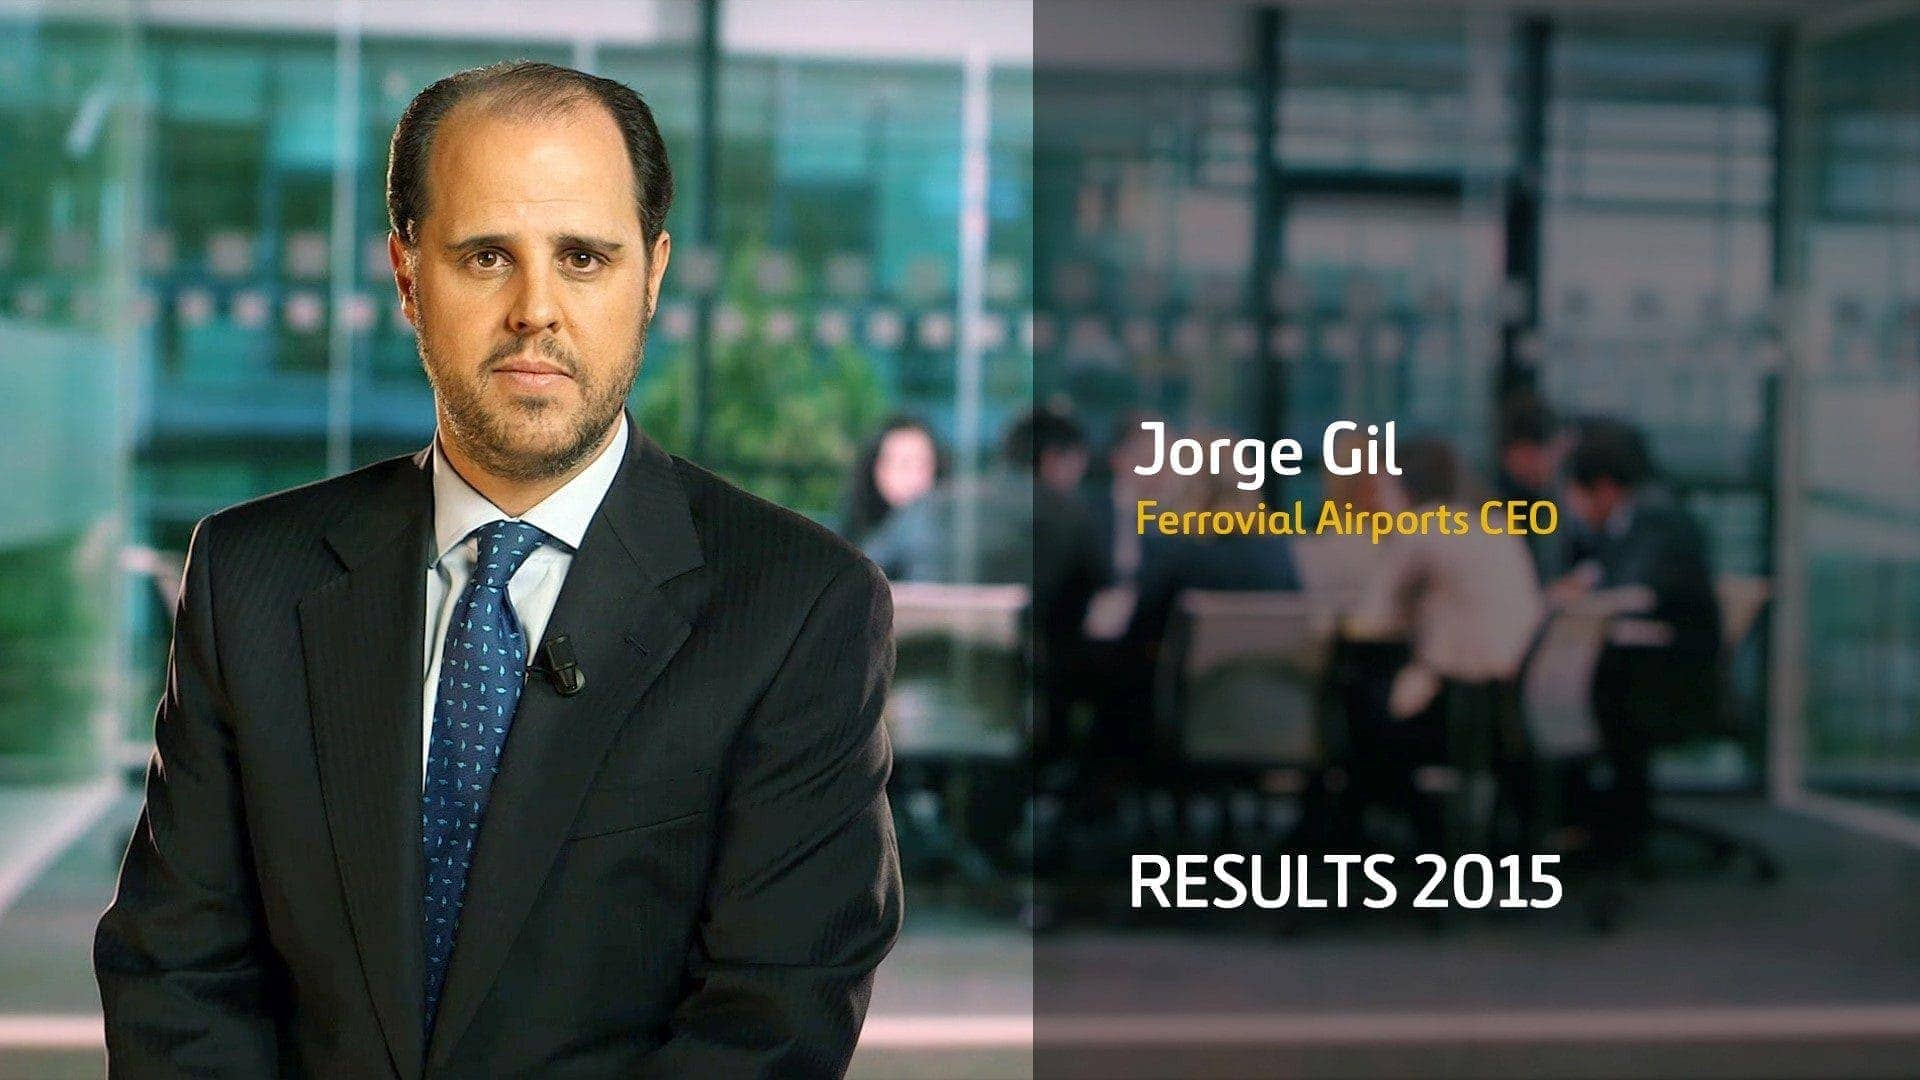 Ferrovial results 2015 Jorge Gil Ferrovial Airports